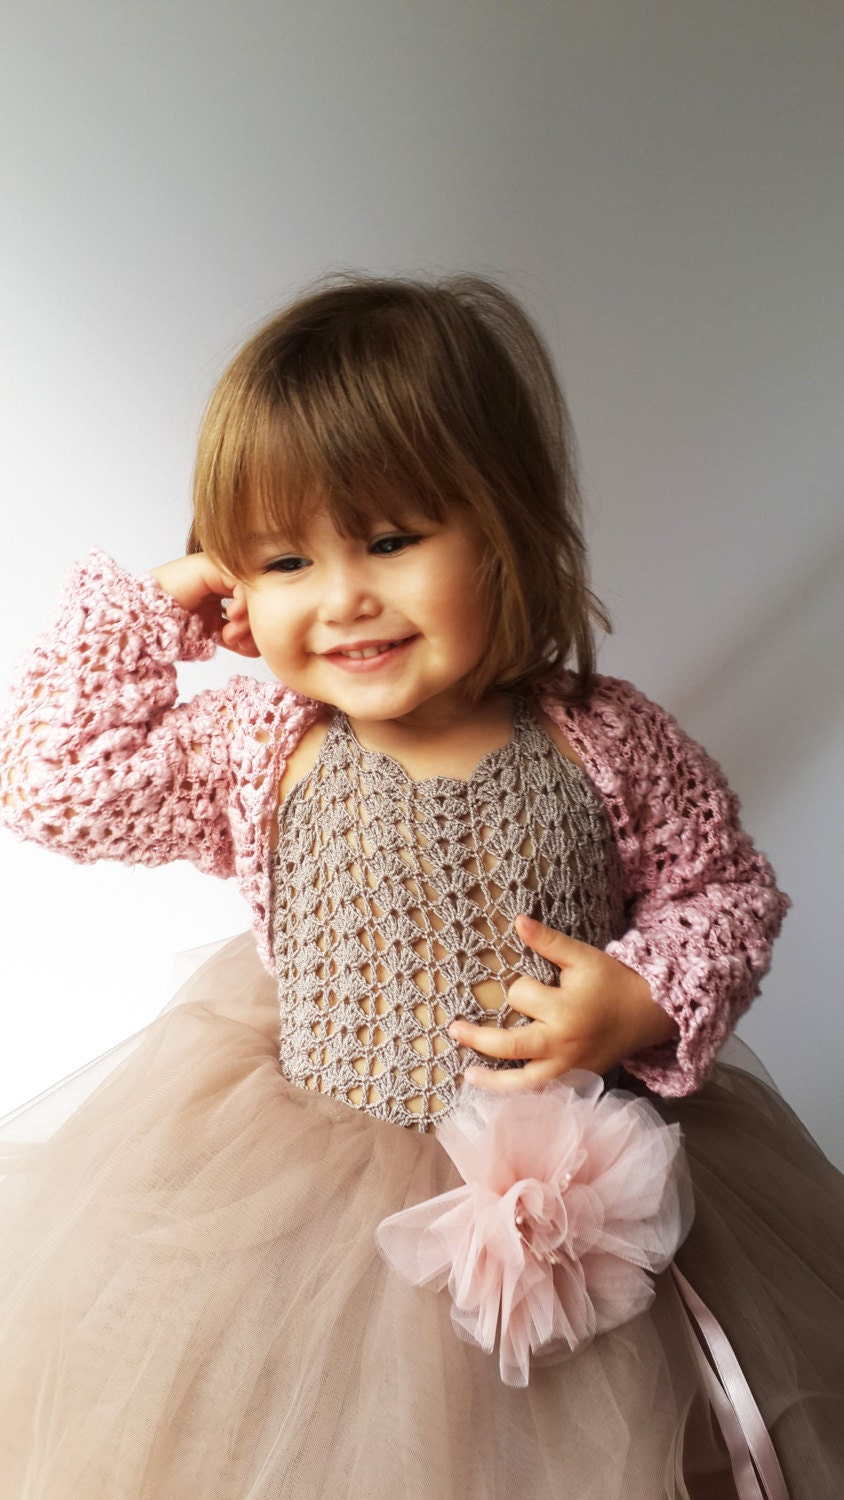 Explore crop-length cover-ups from zulily for glam little girls. She'll be set for the occassion in dressy bolero jackets with long or short sleeves.